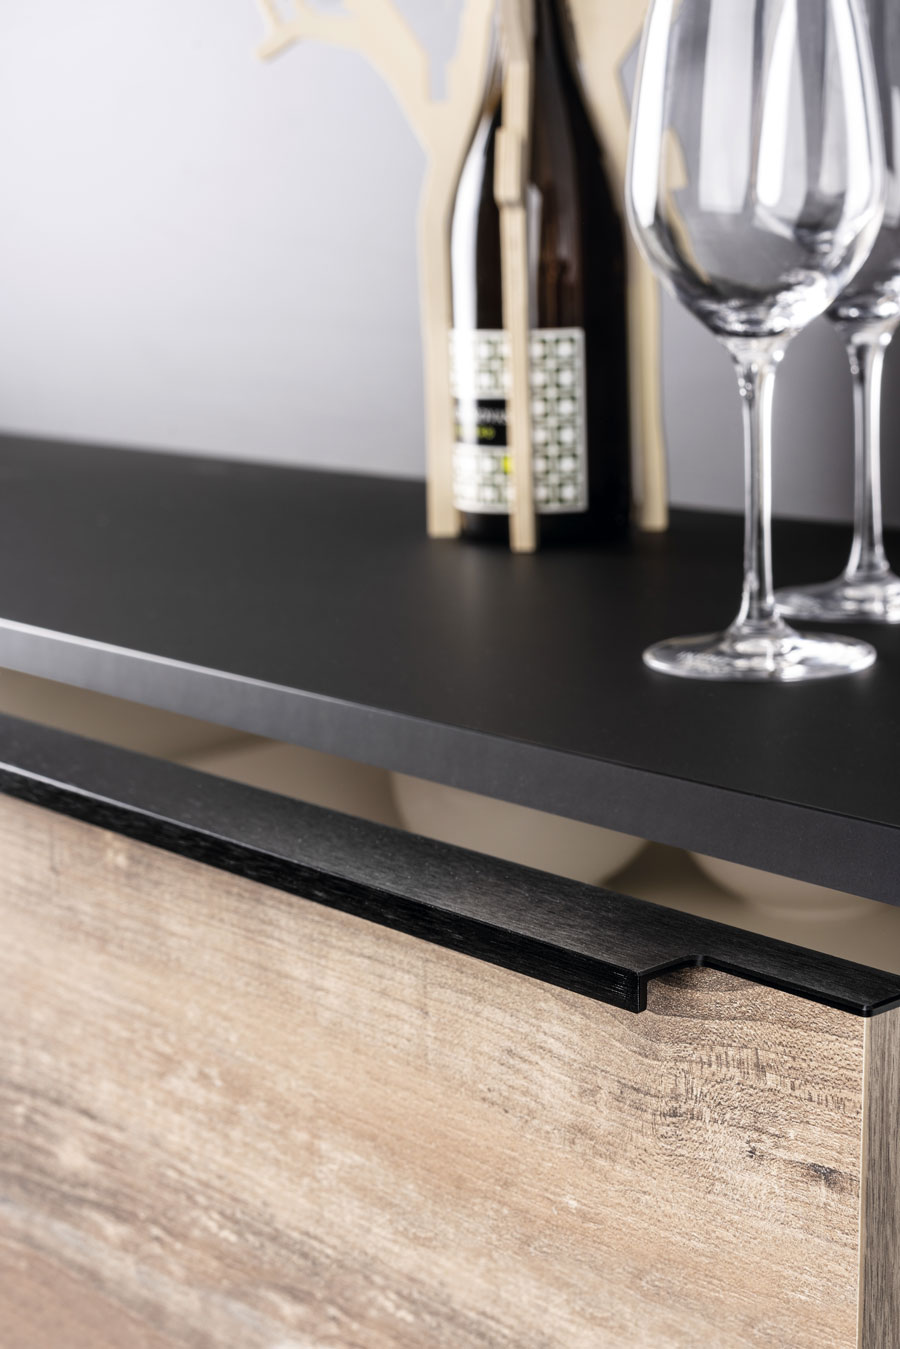 Linear handle for kitchens, bedrooms and bathrooms decoration. Tirador Linear de cocinas, habitaciones y baños by Viefe